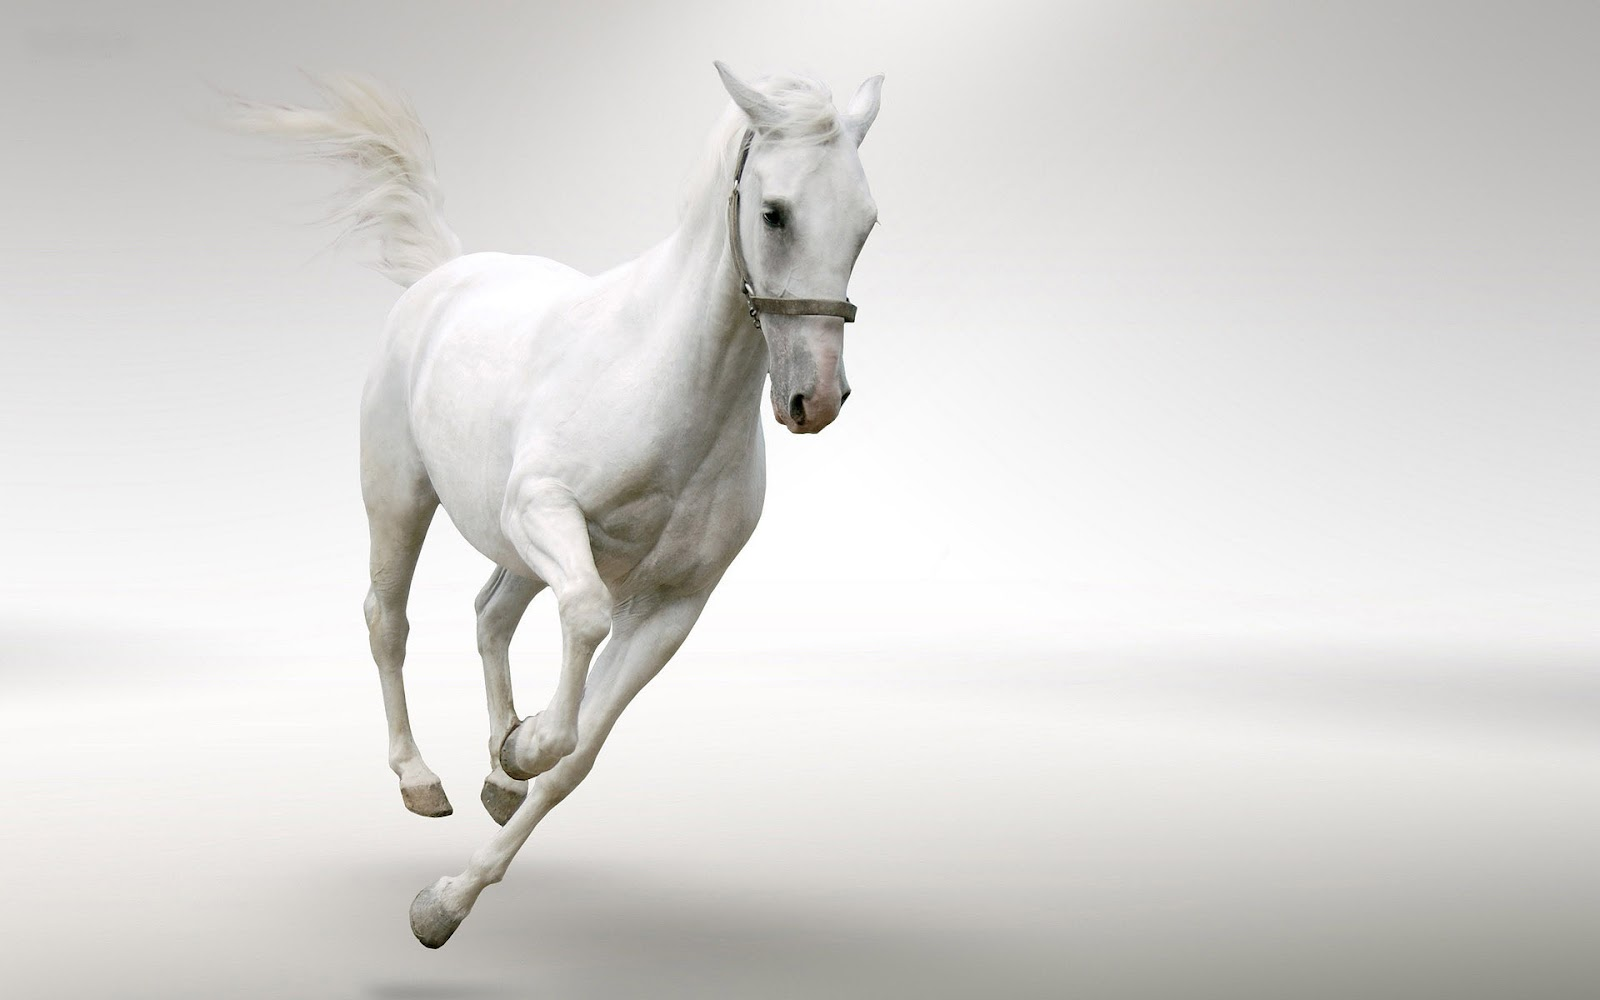 http://1.bp.blogspot.com/-zpsopJ3AsPY/UDewUCj3gsI/AAAAAAAAA_A/ew8zREfU-JU/s1600/hd-horse-wallpaper-with-a-fast-running-white-horse-hd-horses-wallpapers-background-picture-photo.jpg